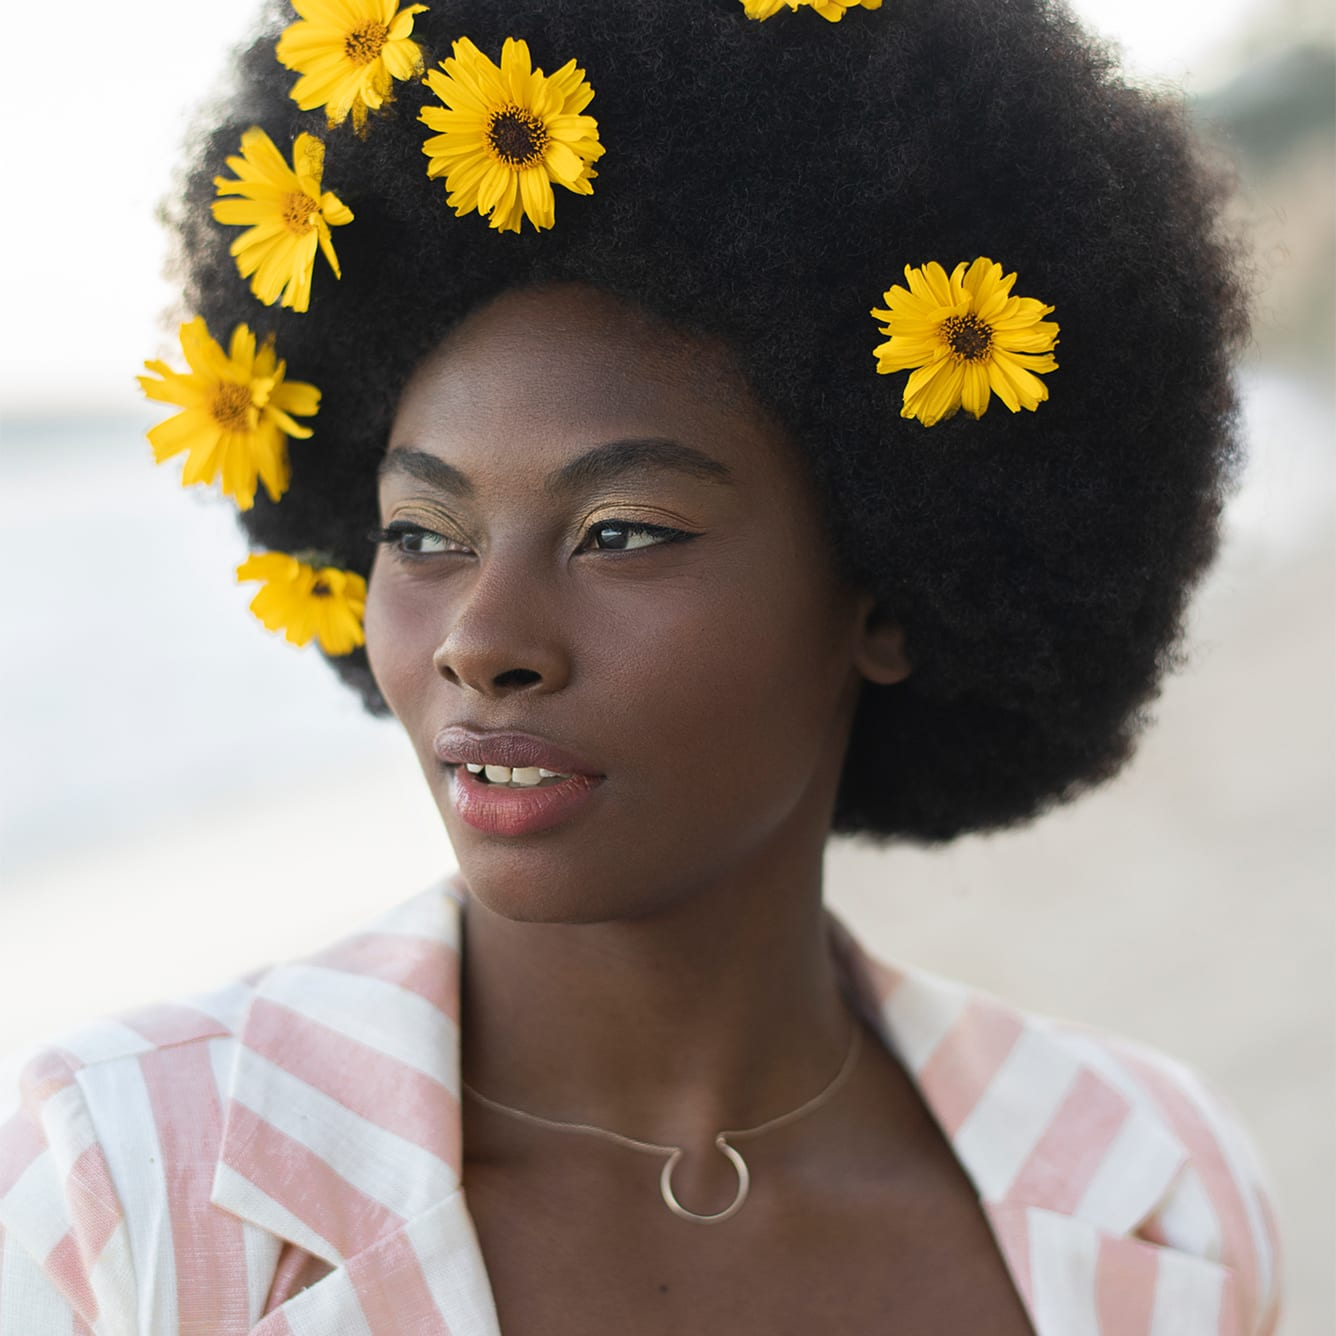 woman with a super curly fro and sunflowers in her hair